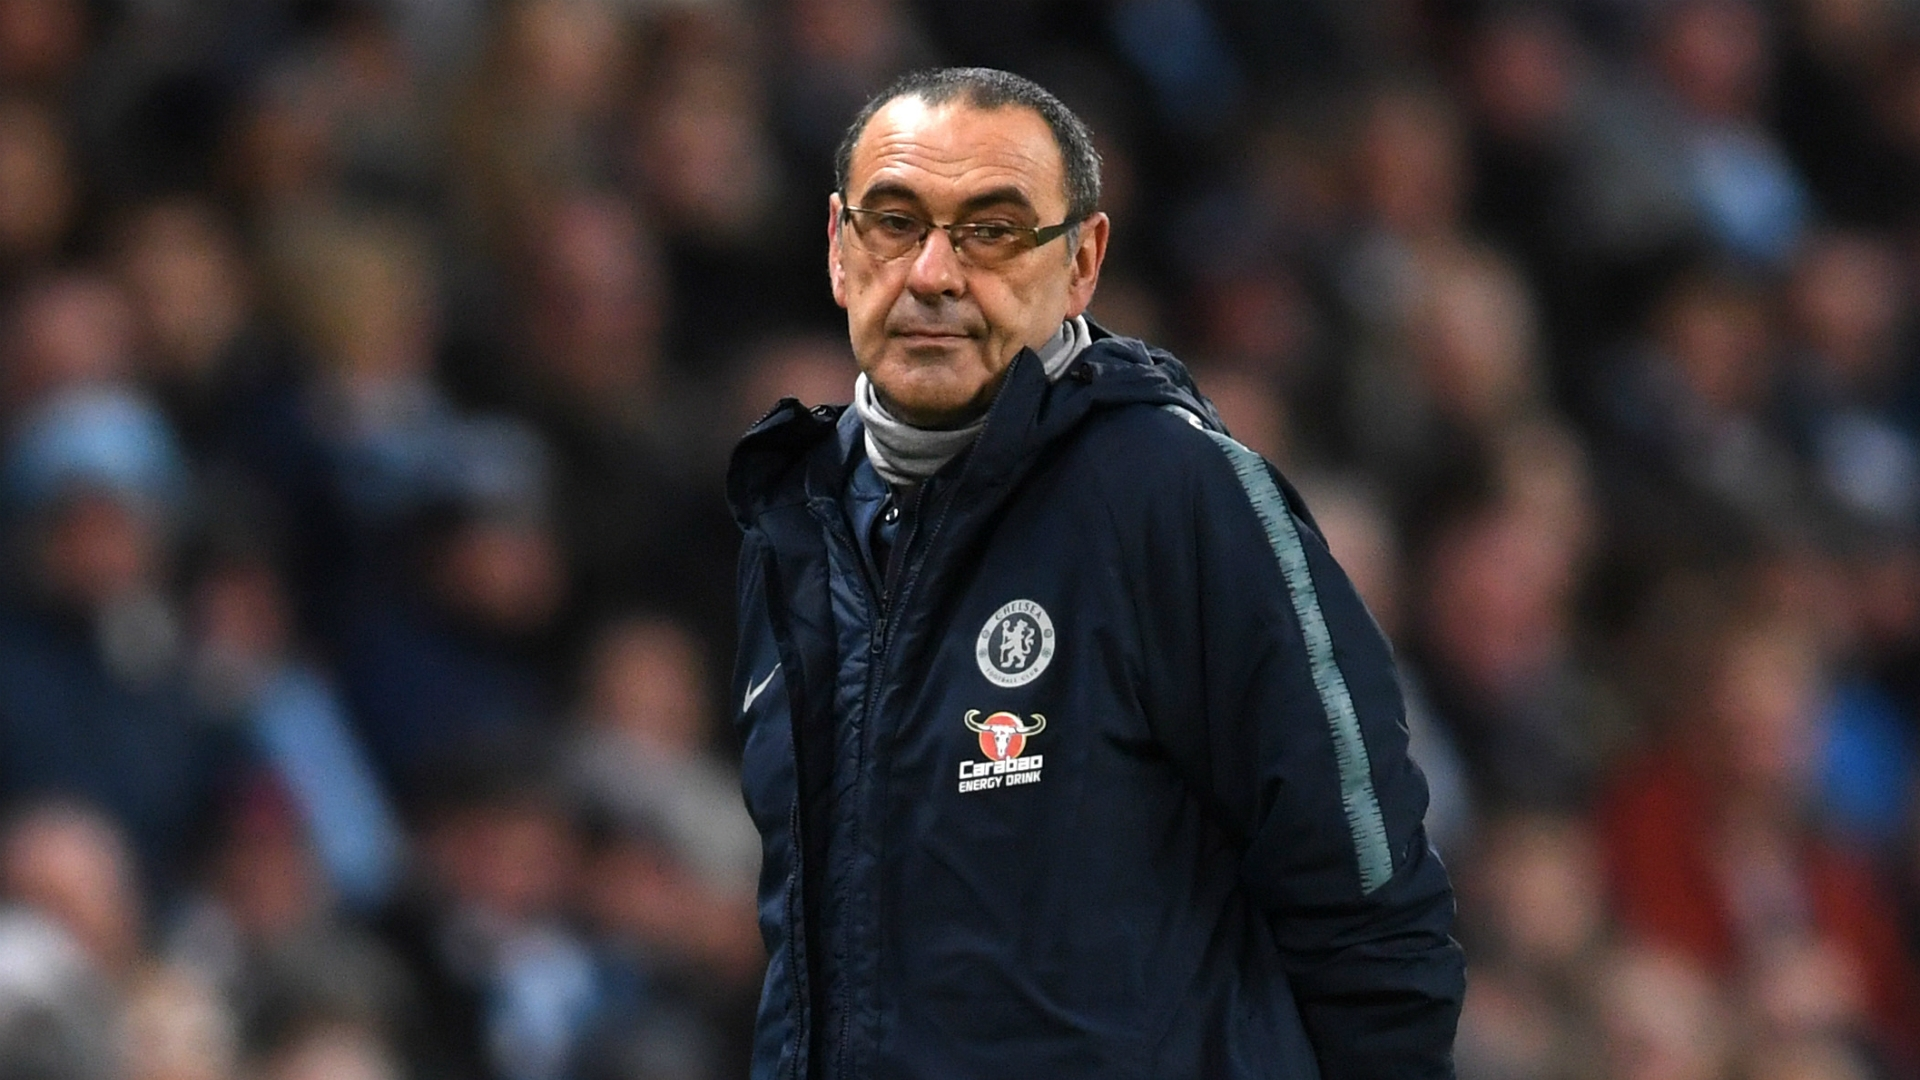 Sarri 'not able to explain' Chelsea's humiliating 6-0 loss to Manchester City